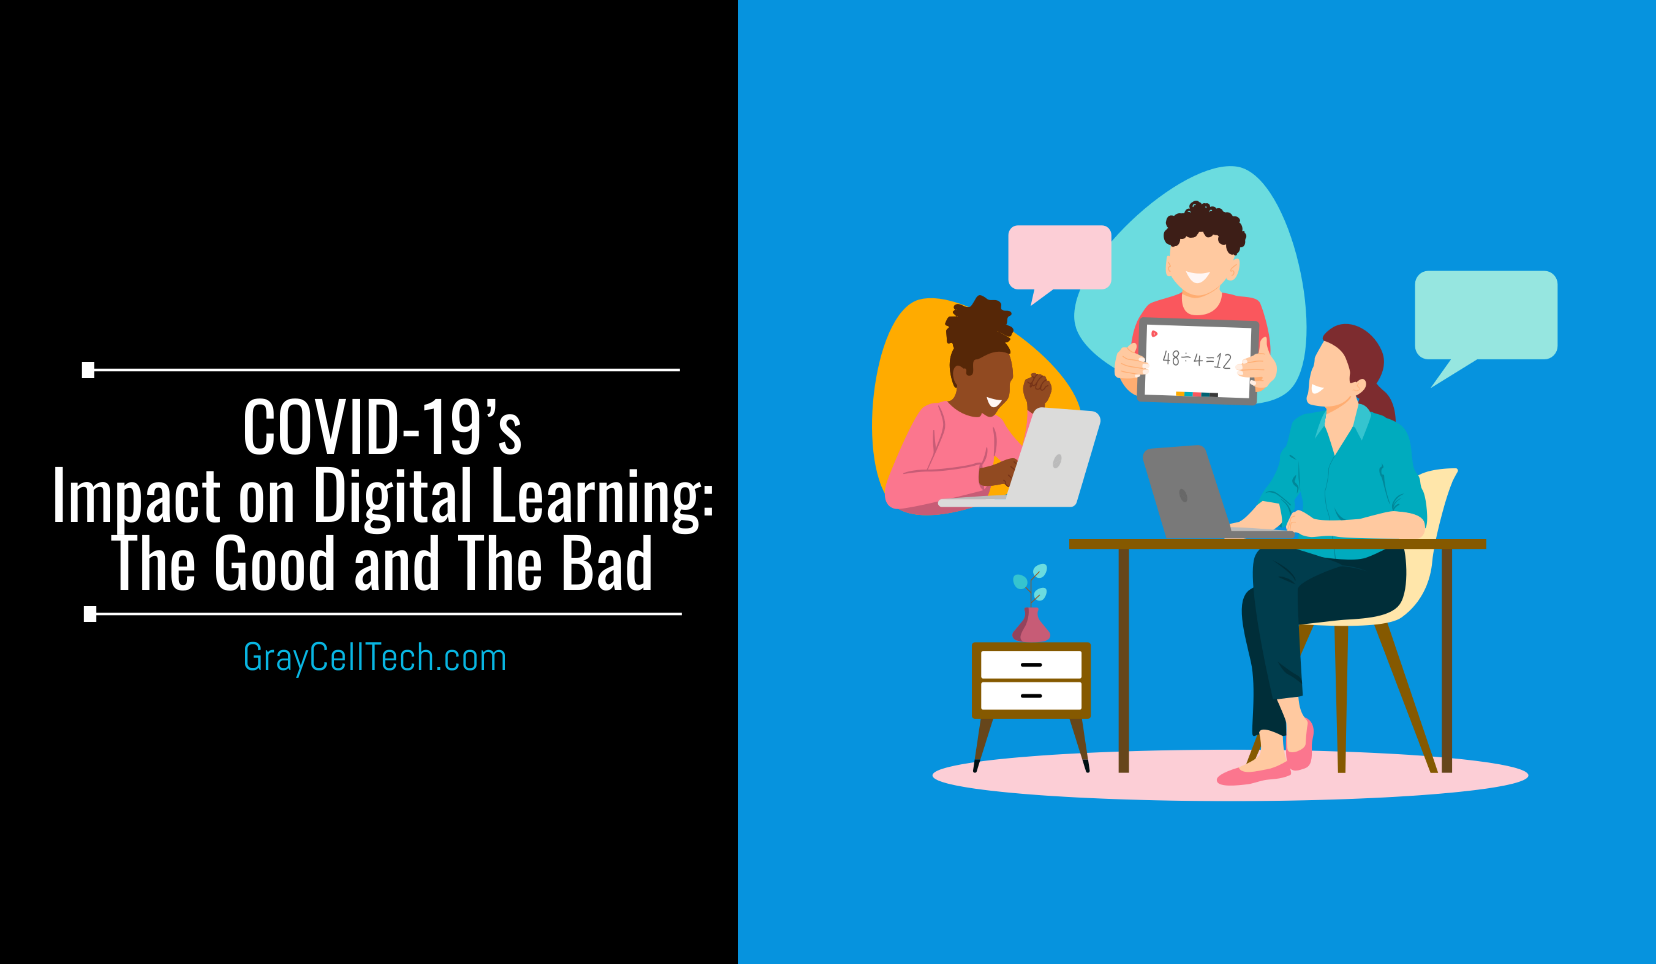 COVID-19's Impact on Digital Learning: The Good and The Bad impacts of remote learning.